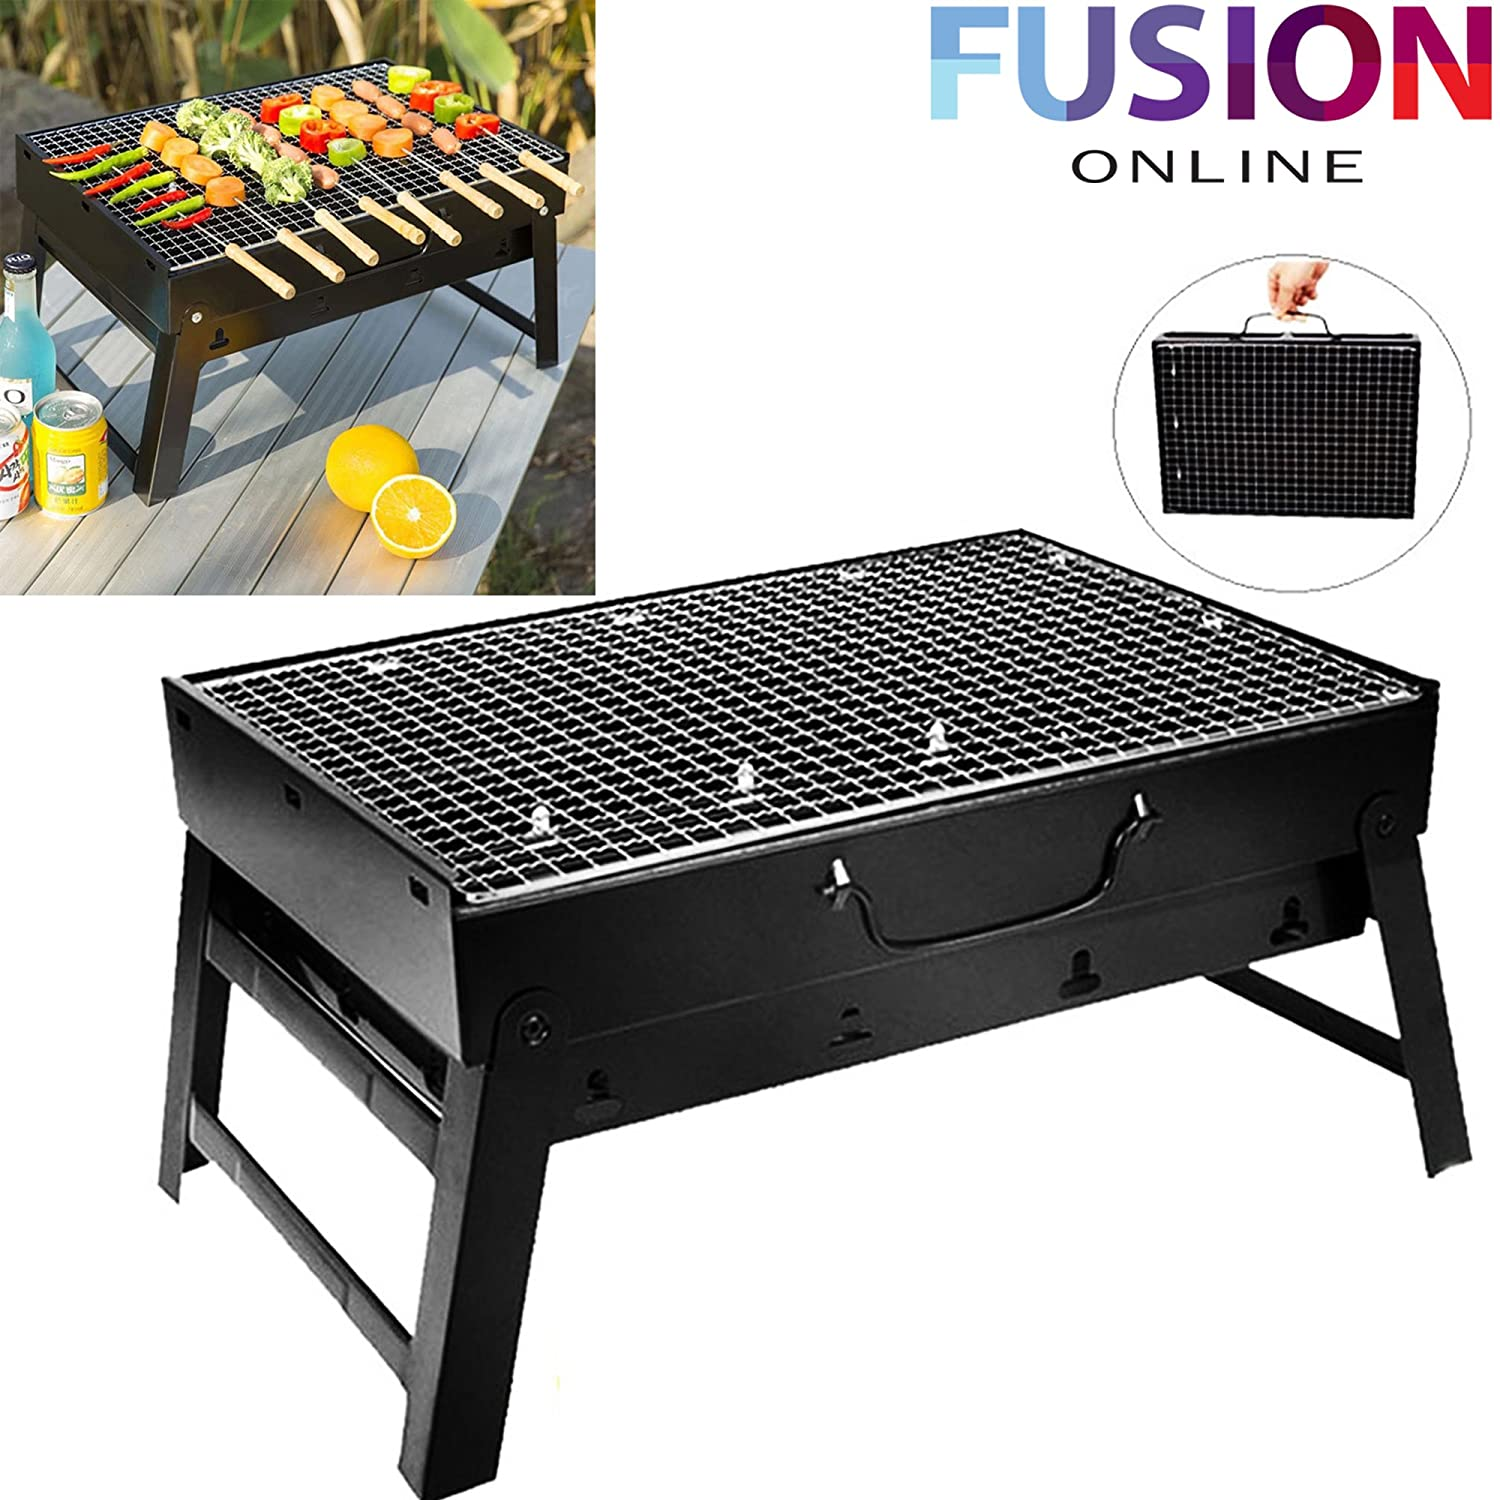 LARGE FOLDABLE STEEL BBQ BARBECUE FLAT PORTABLE CAMPING OUTDOOR GARDEN GRILL NEW Fusion Online